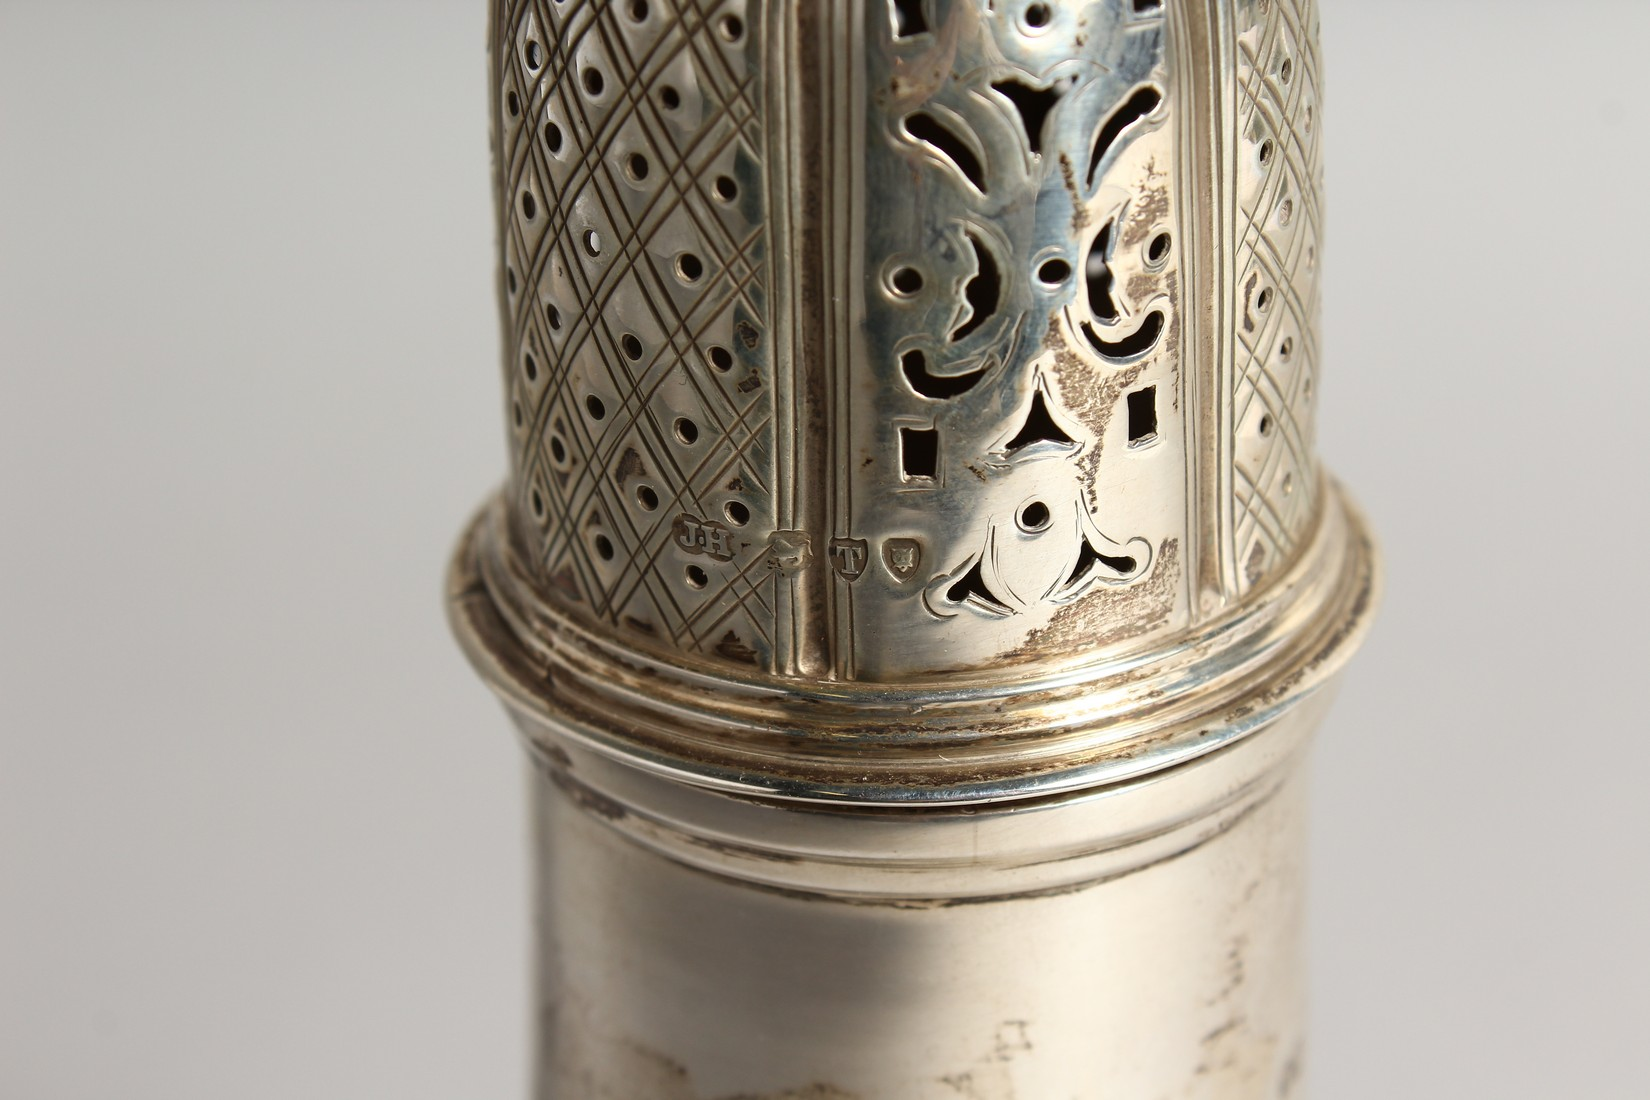 A LARGE SILVER PEDESTAL SUGAR CASTER, with wrythen fluted body, London 1894, 9.75ins high. - Image 2 of 7